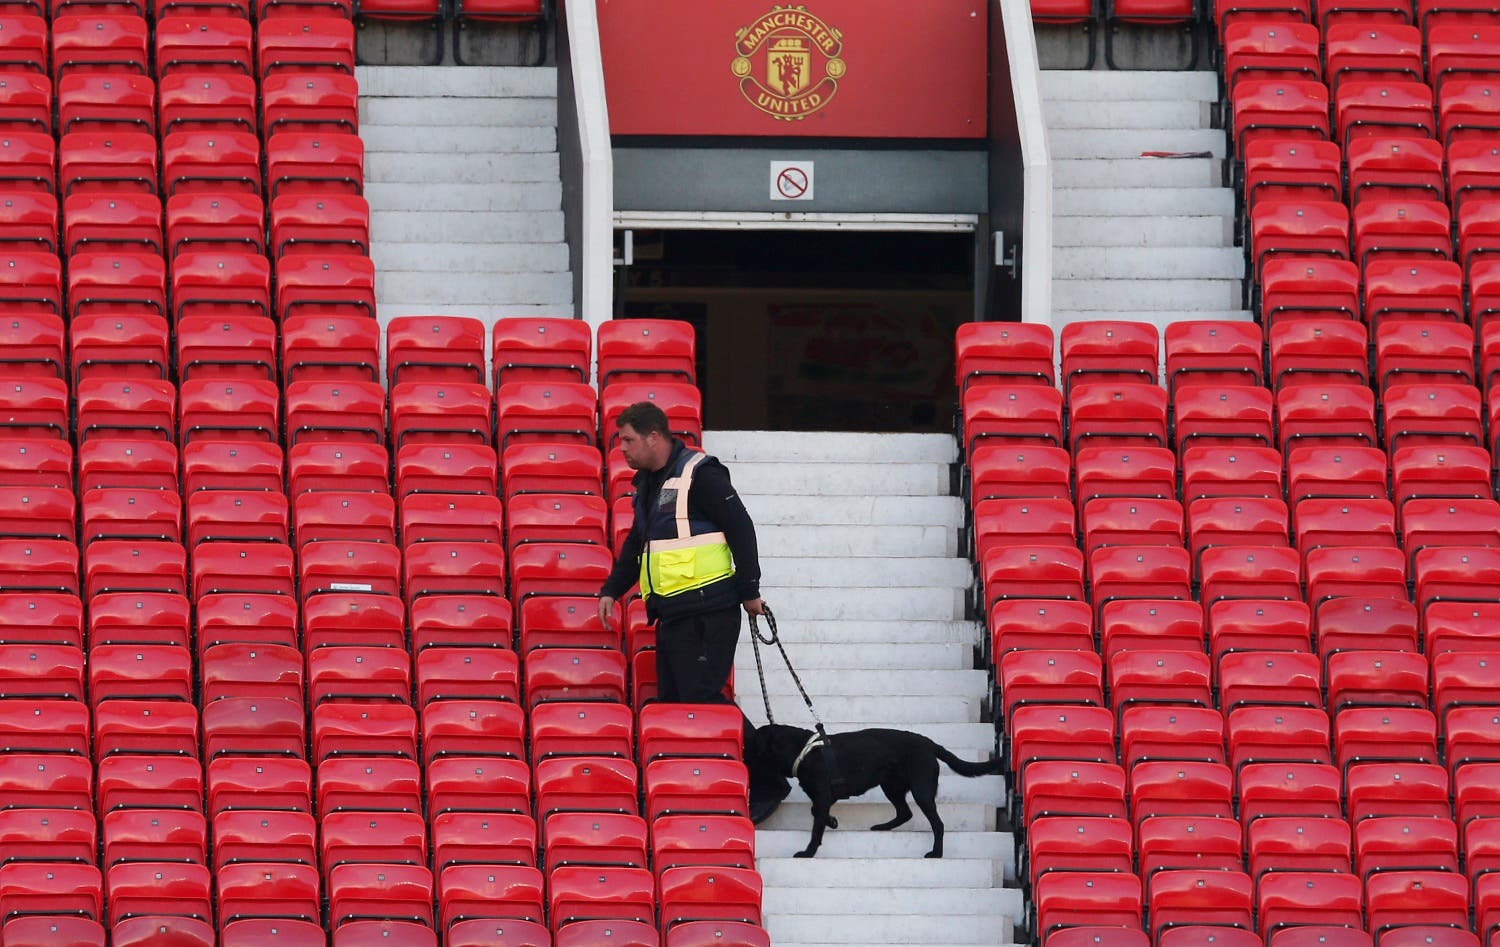 A police dog after the match was abandoned Reuters / Andrew Yates Livepic